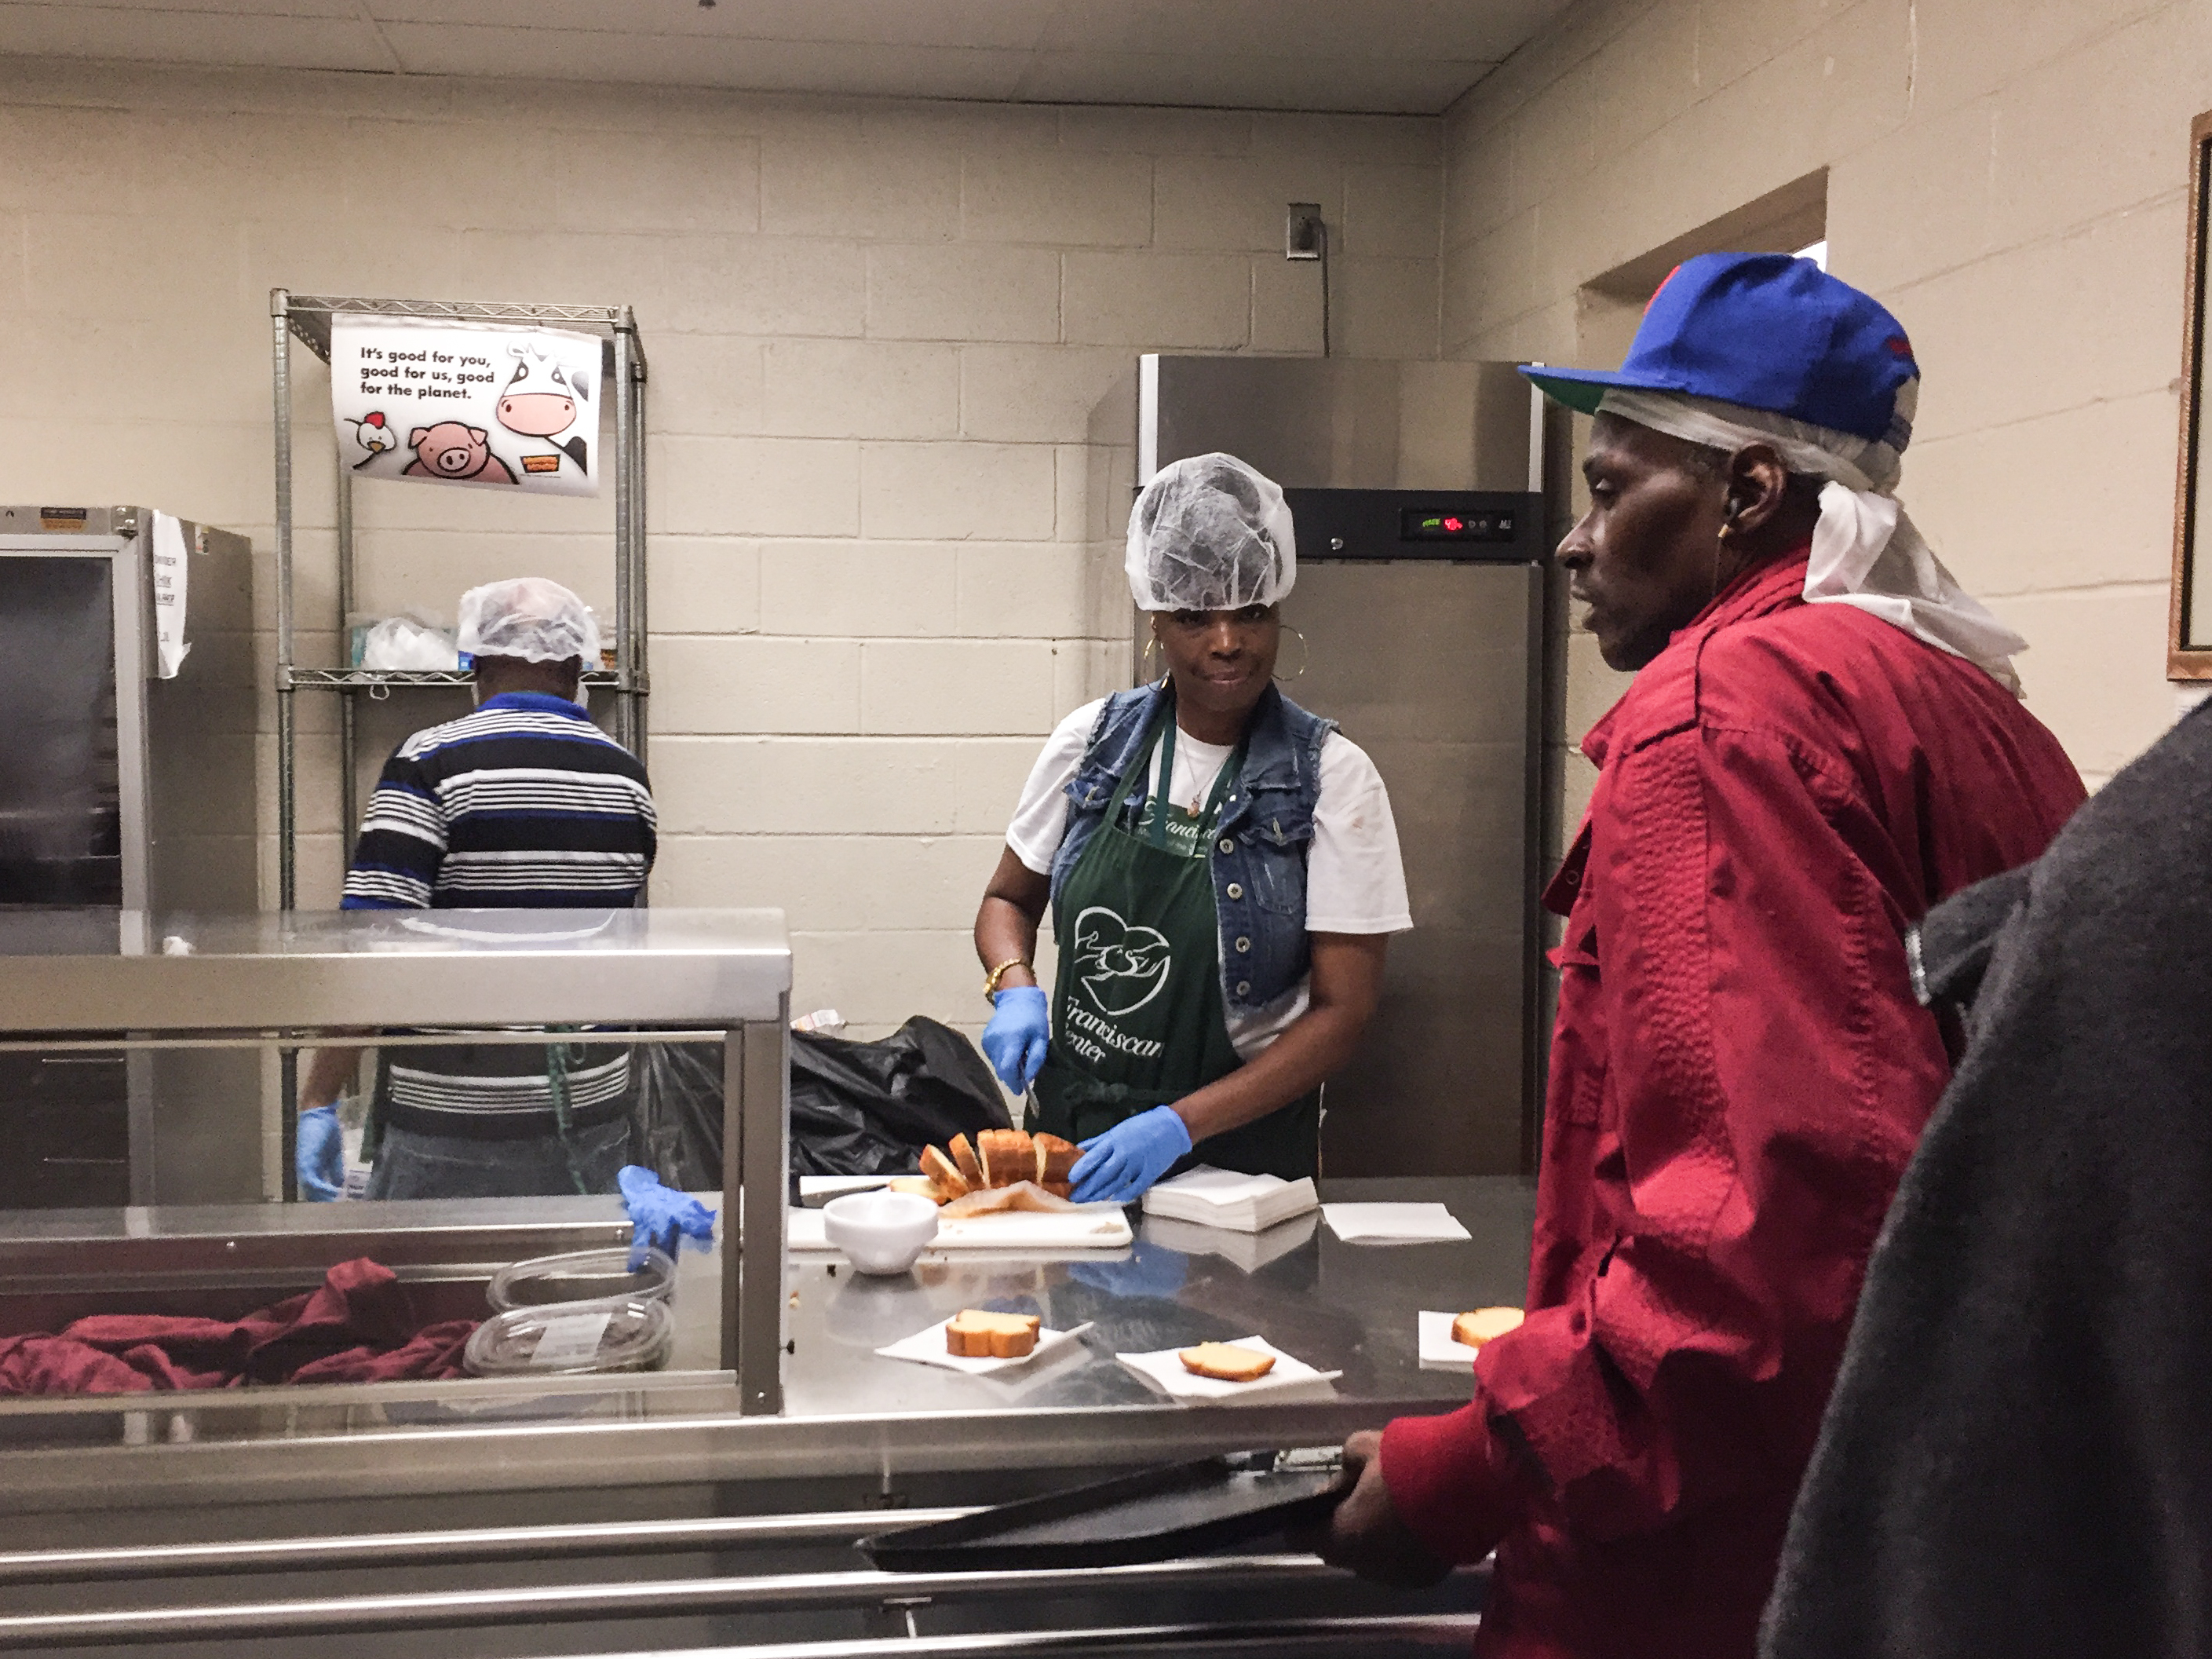 The Franciscan Center In Baltimore Serves A Hot Lunch Daily To Those Who Need Extra Help Even If They Receive Food Stamps Benefits Could End For